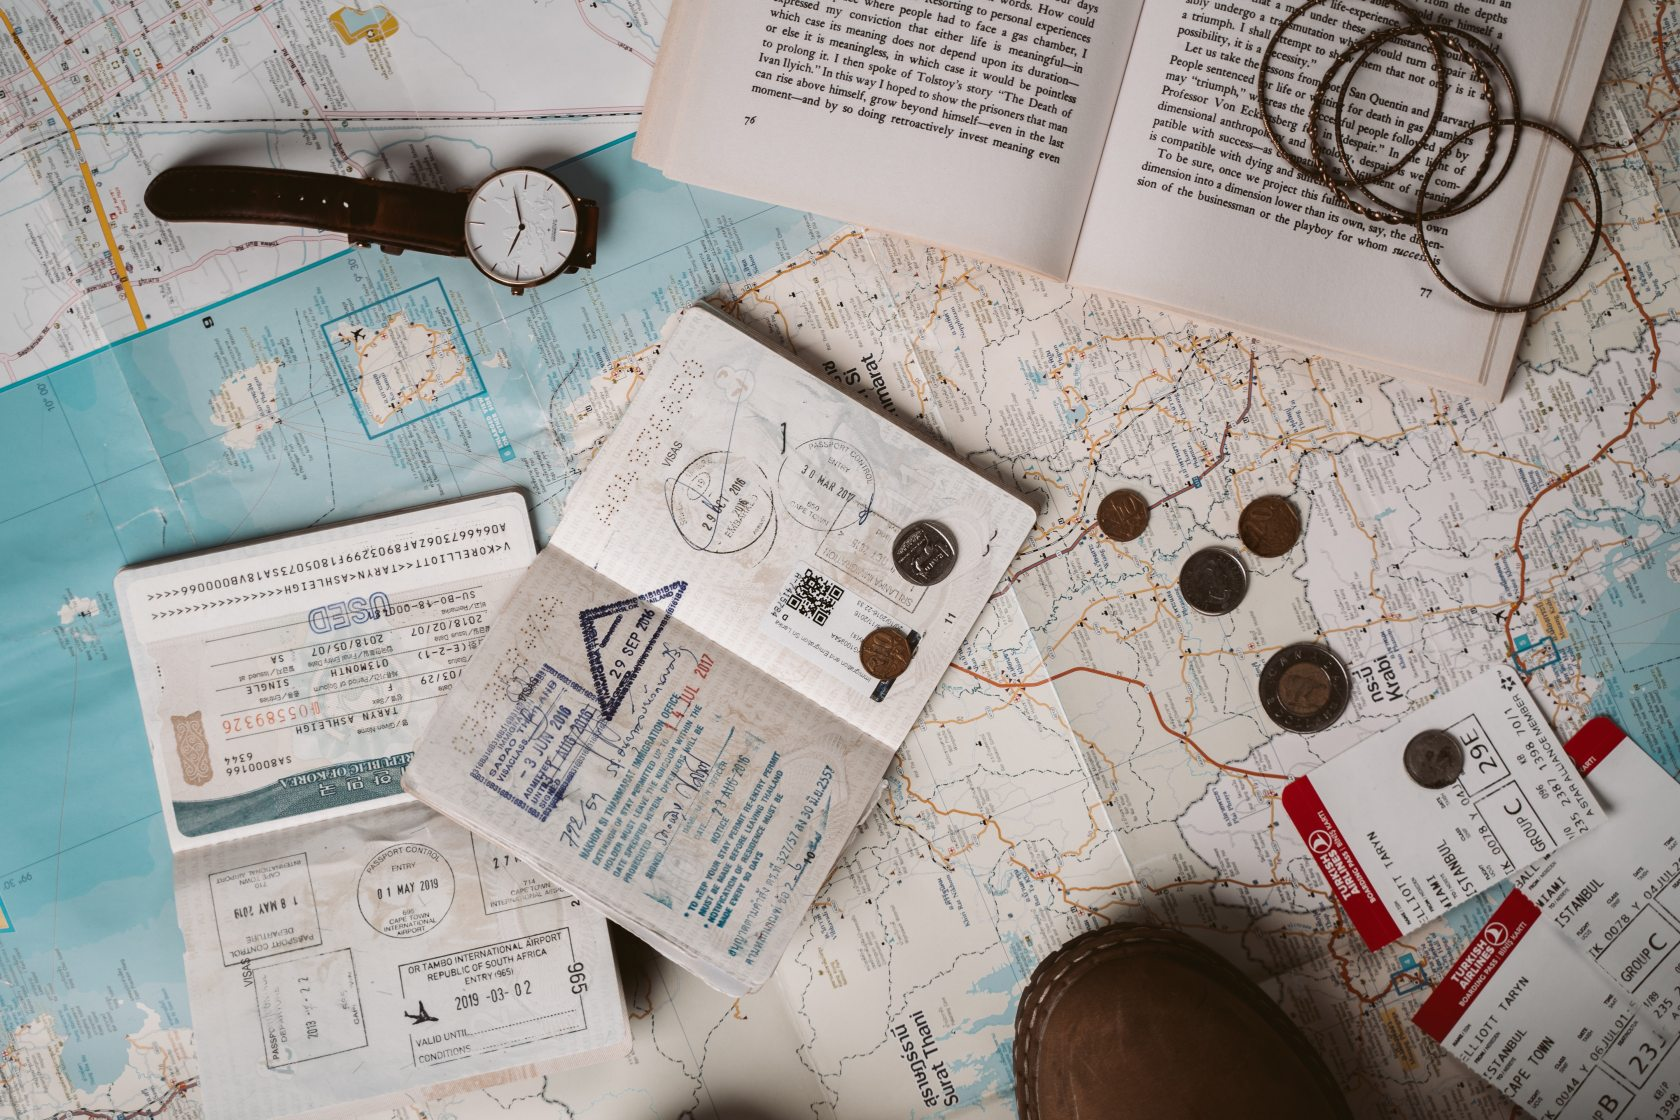 Passport and travel documents, a watch, an open book, and coins on top of paper maps